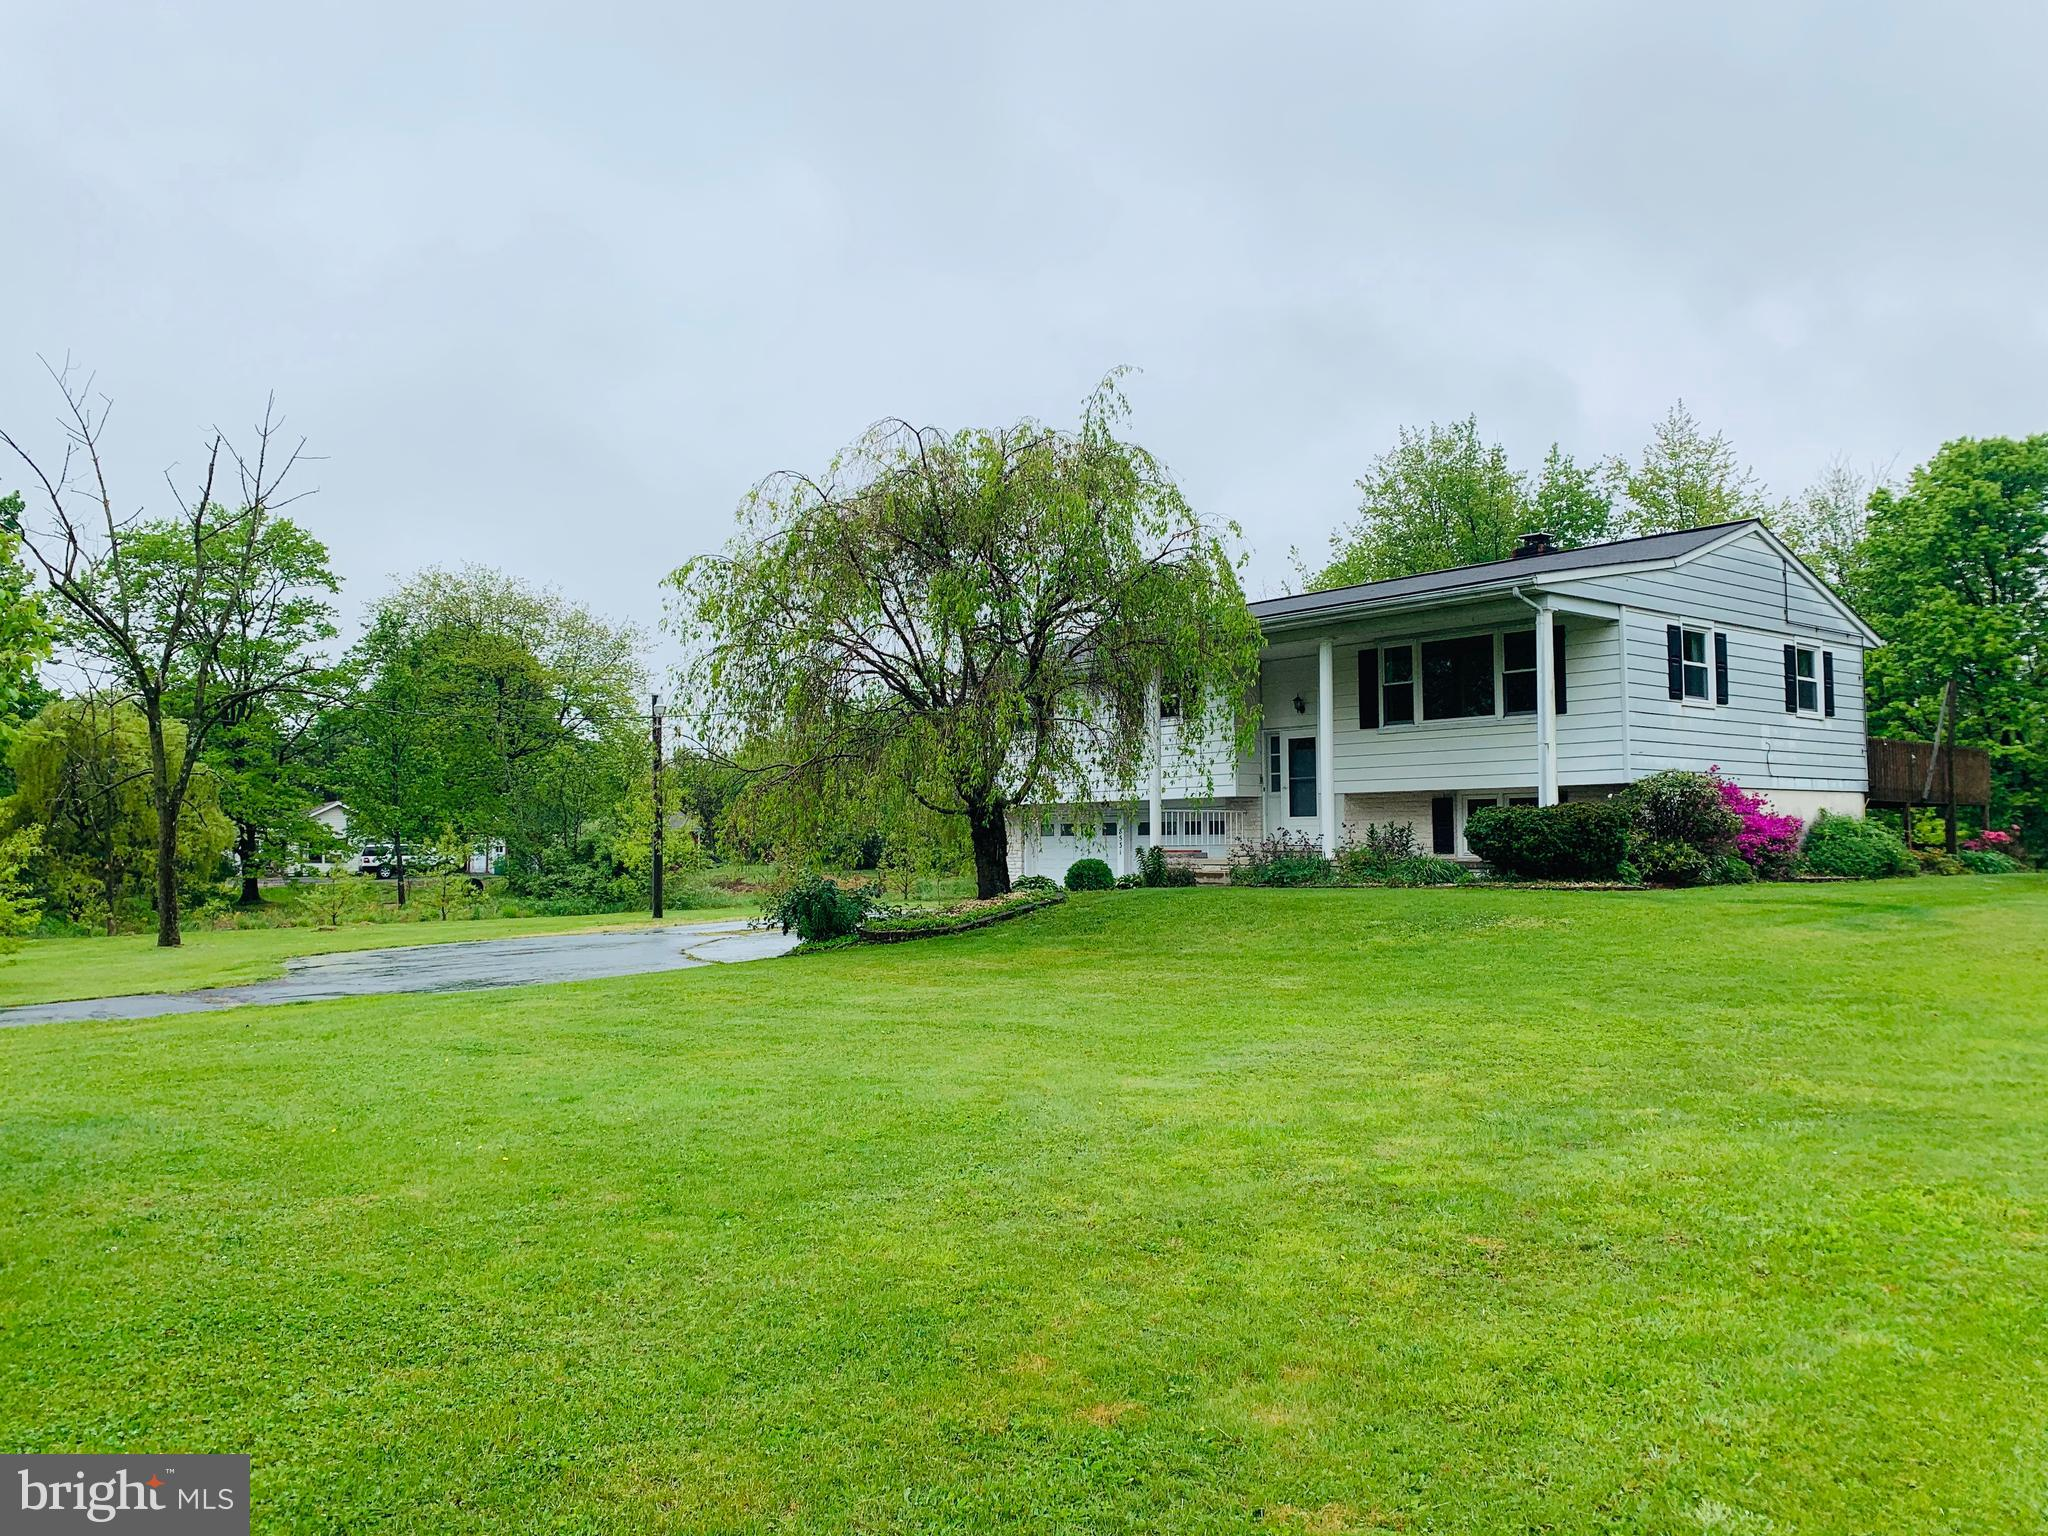 8531 Old Route 22, Bethel, PA 19507